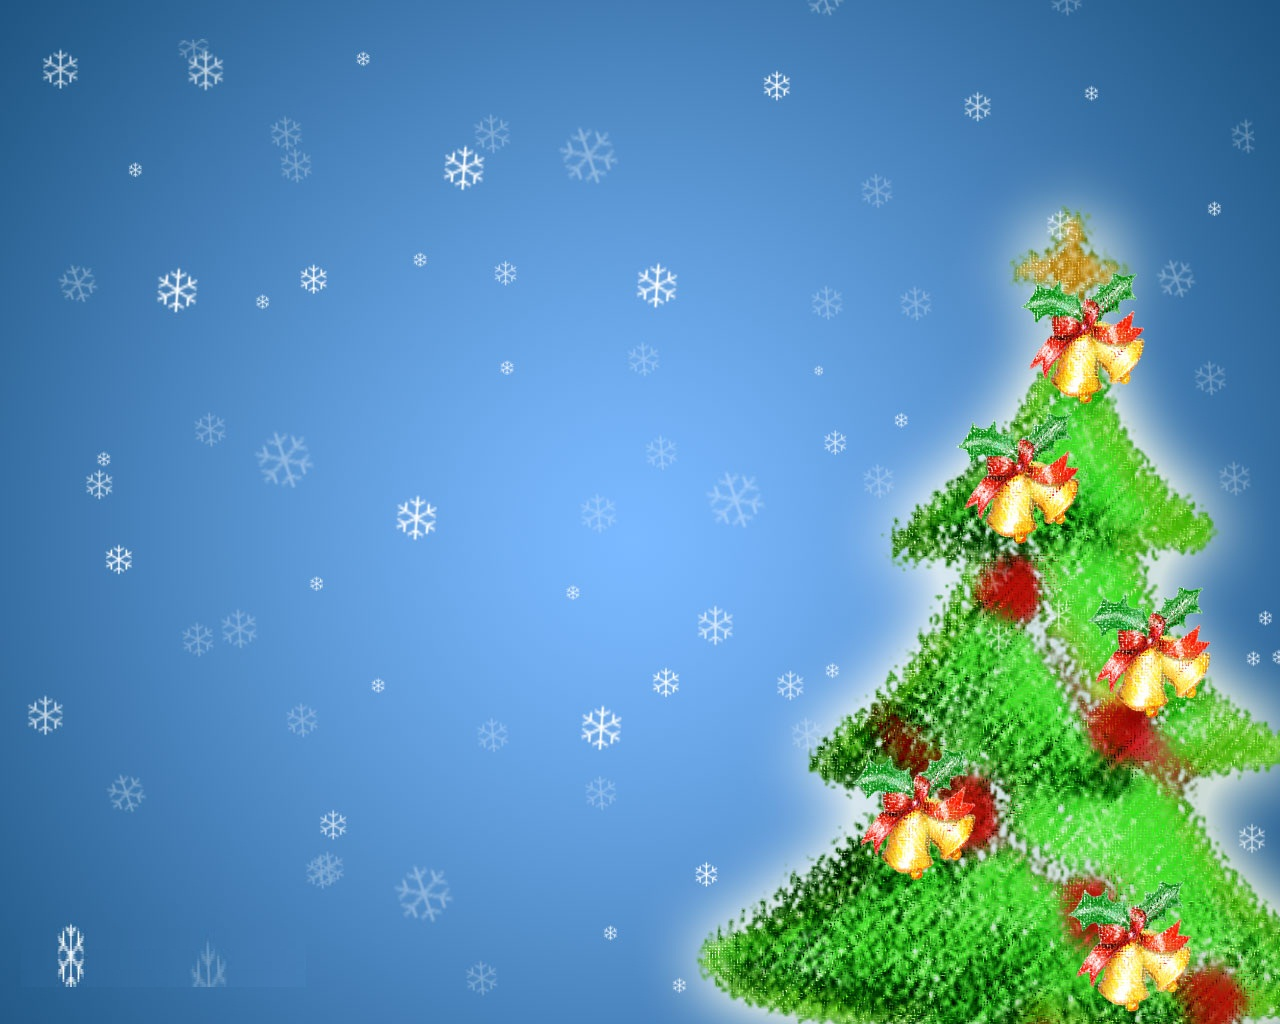 Christmas Backgrounds For Computer.Christmas Desktop Clipart 20 Free Cliparts Download Images